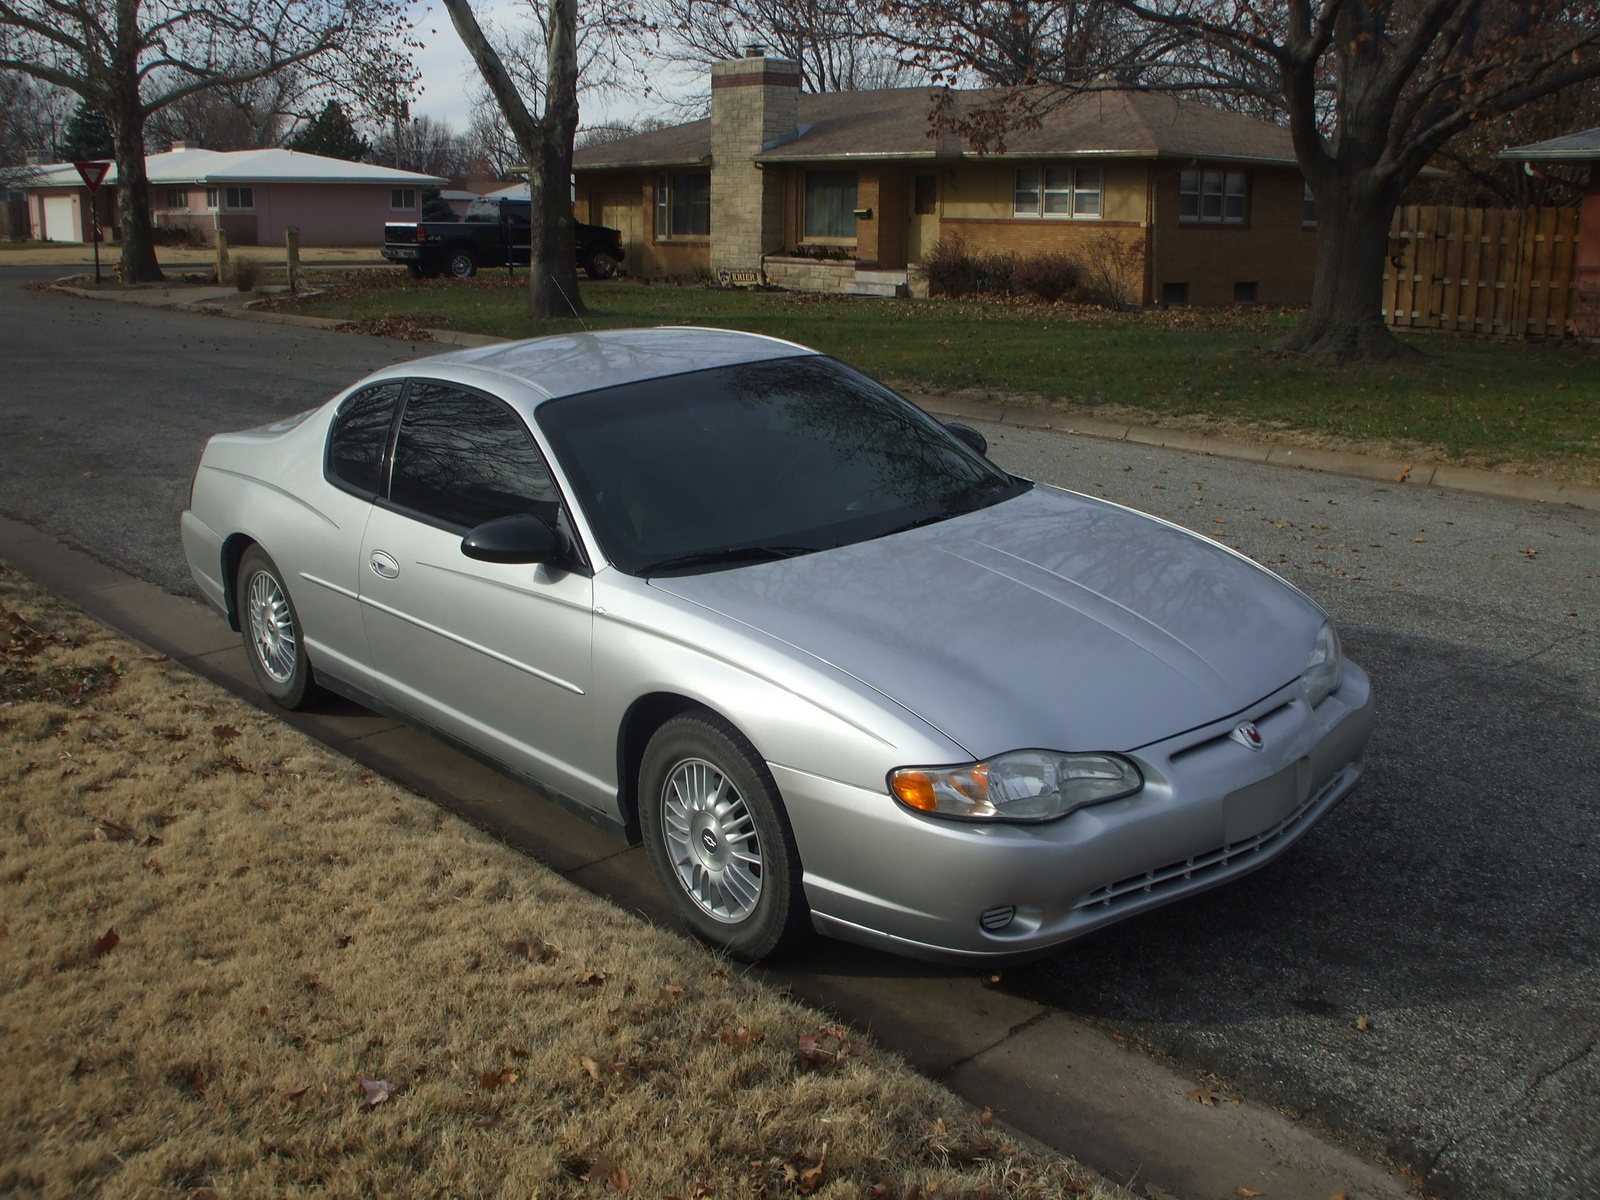 used 2003 chevrolet monte carlo review specs photos html. Black Bedroom Furniture Sets. Home Design Ideas